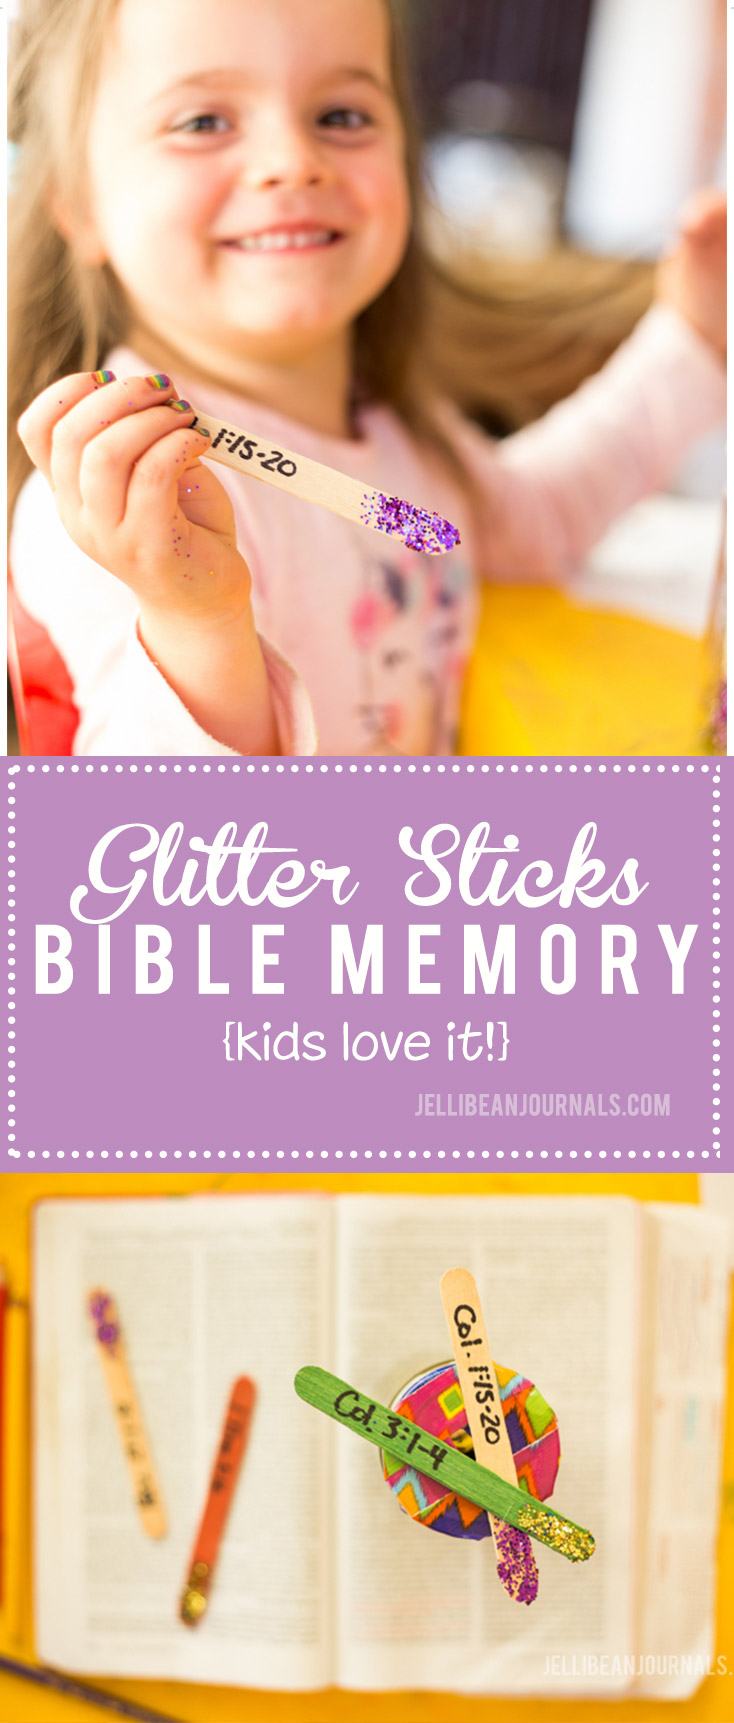 Teach your kids the Bible with fun Scripture glitter sticks | jellibeanjournals.com